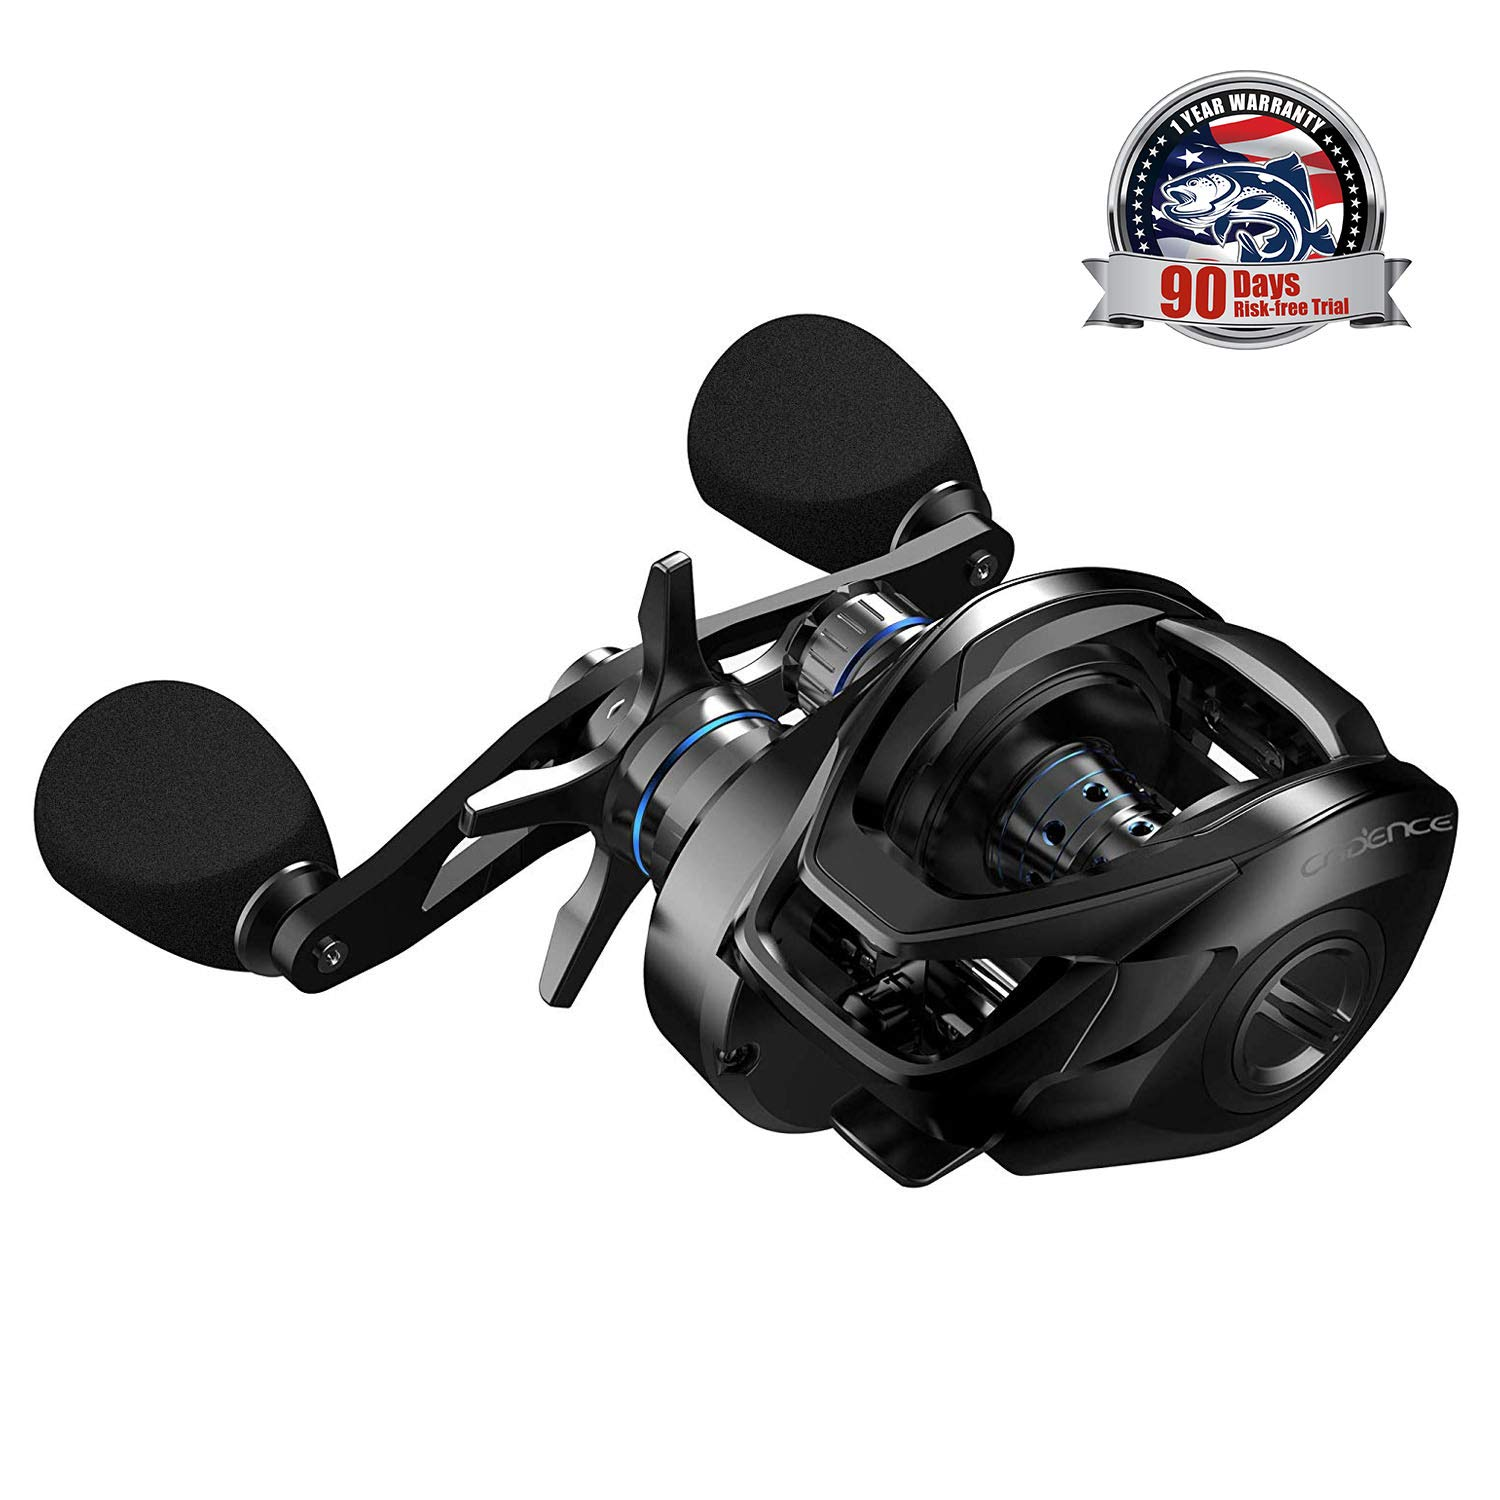 Cadence CB8 Baitcasting Reels Ultra Lightweight Fishing Reels with 9+1 Corrosion Resistant Bearings Baitcaster with 20 lb Carbon Fiber Drag 5.6:1 6.6:1 7.3:1 Gear Ratio Casting Reels